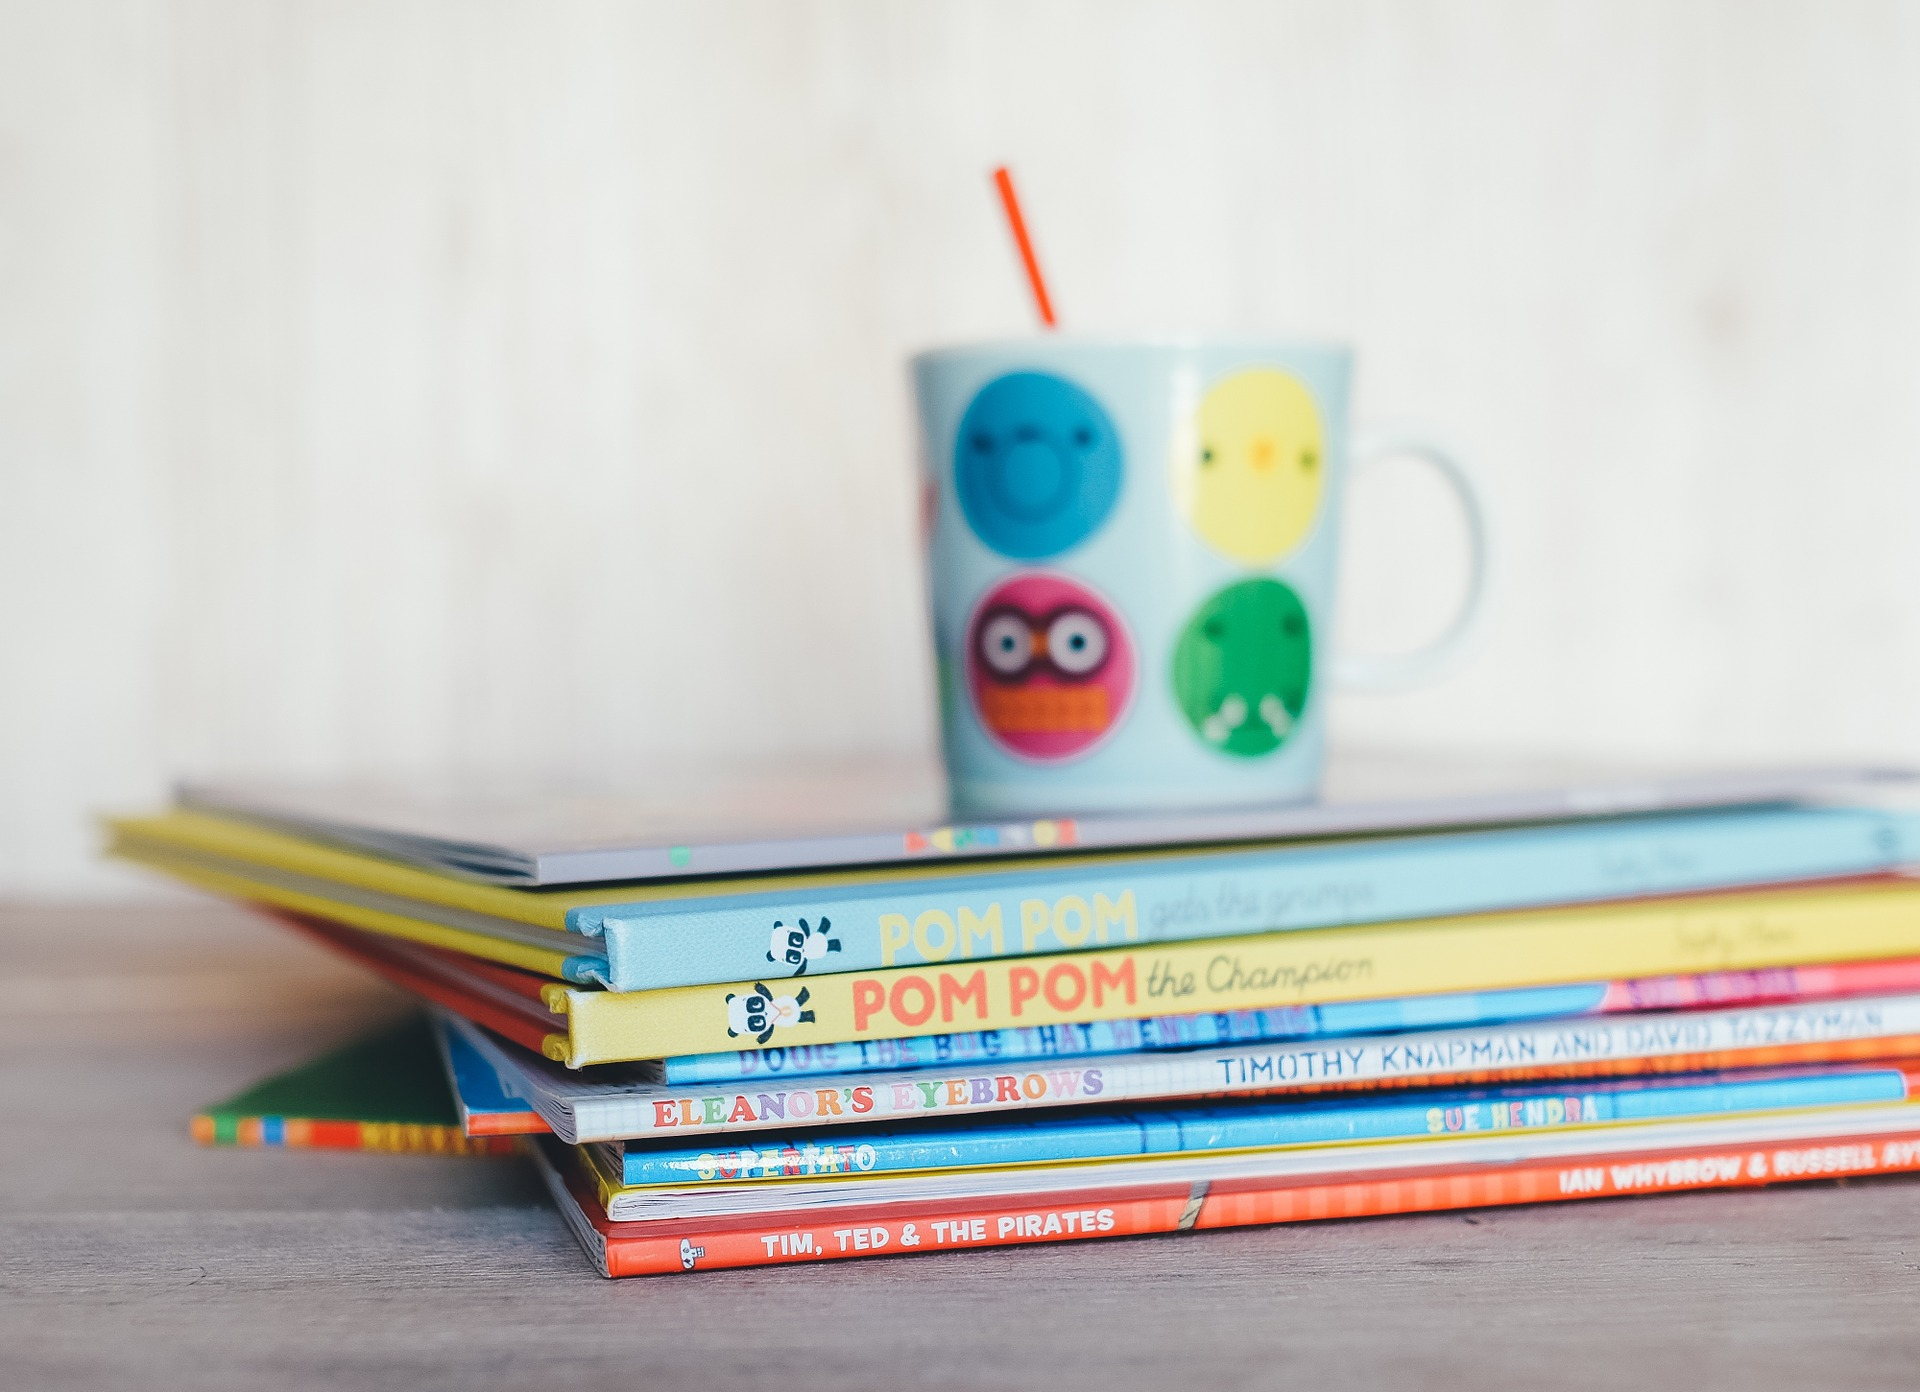 at the top of the children books is a baby cup with red straw